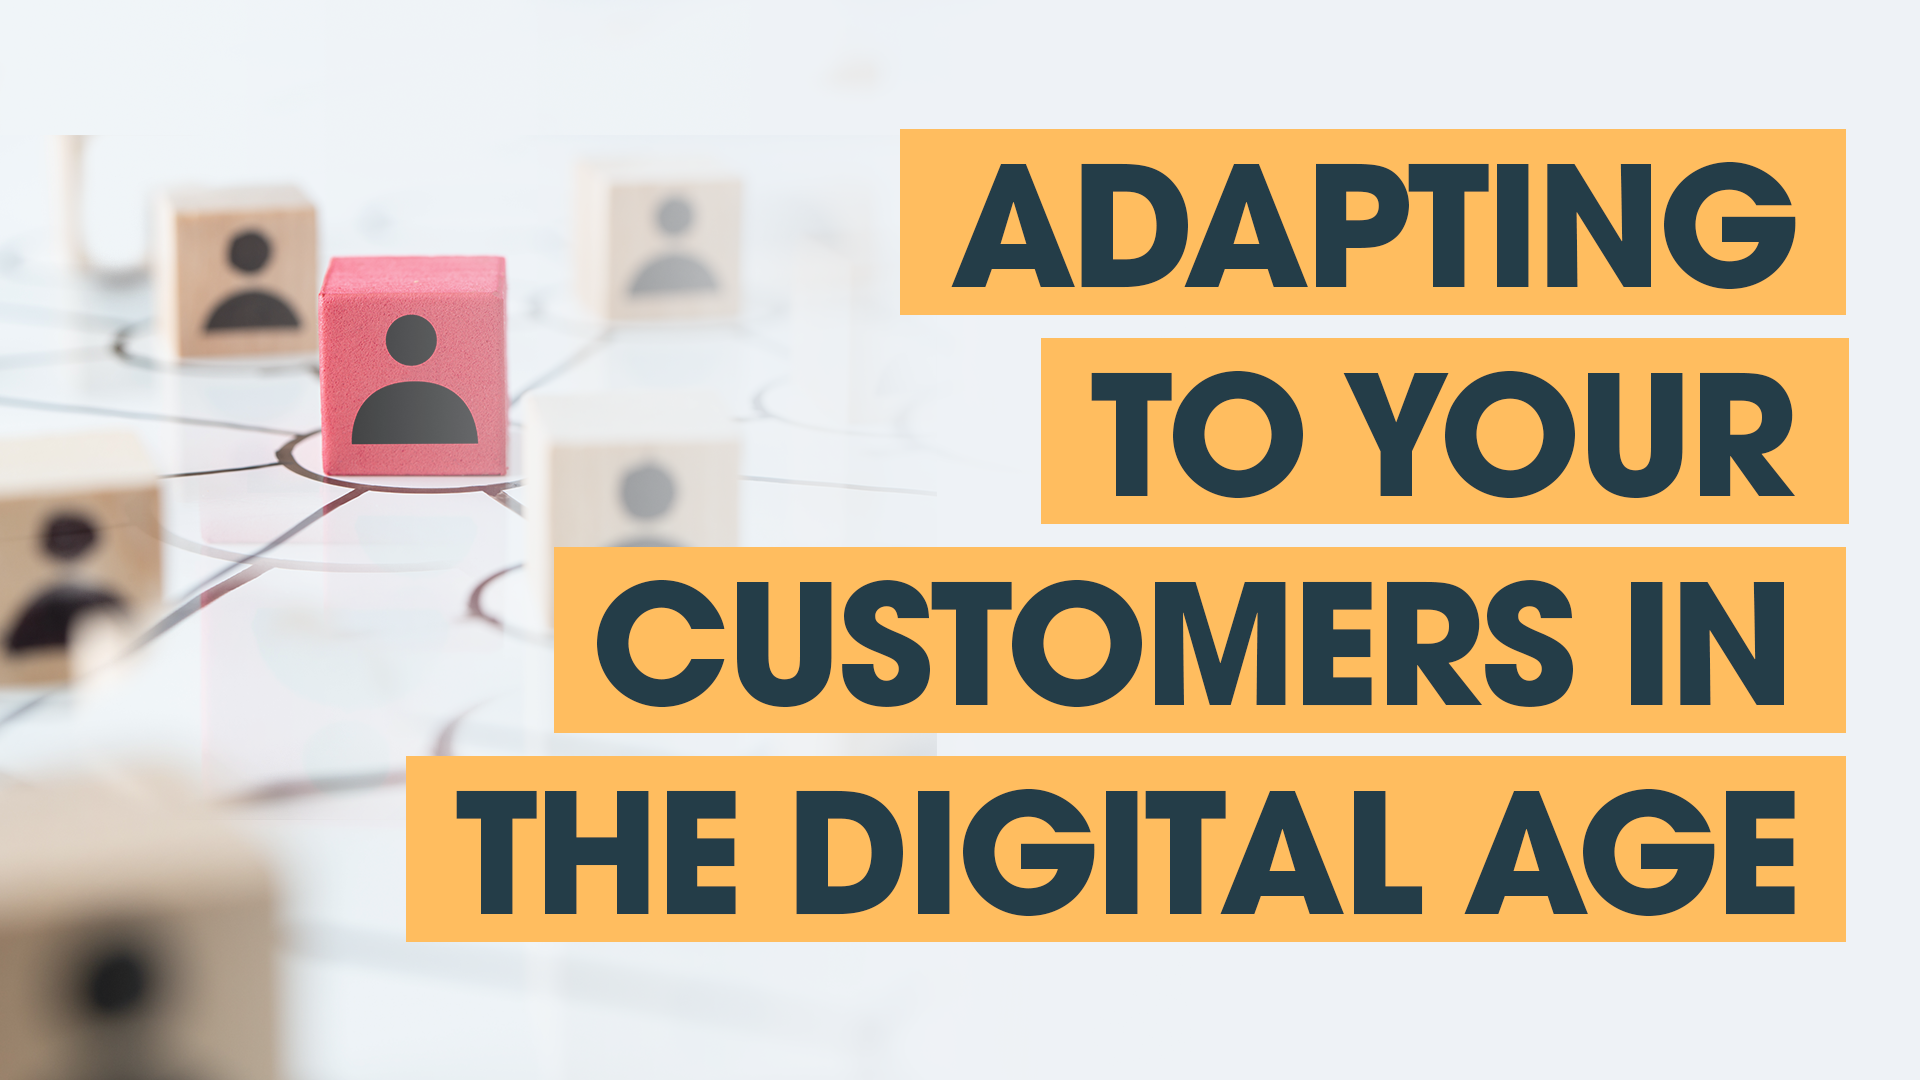 Adapting to the Changing Needs of Customers in a Digital Age